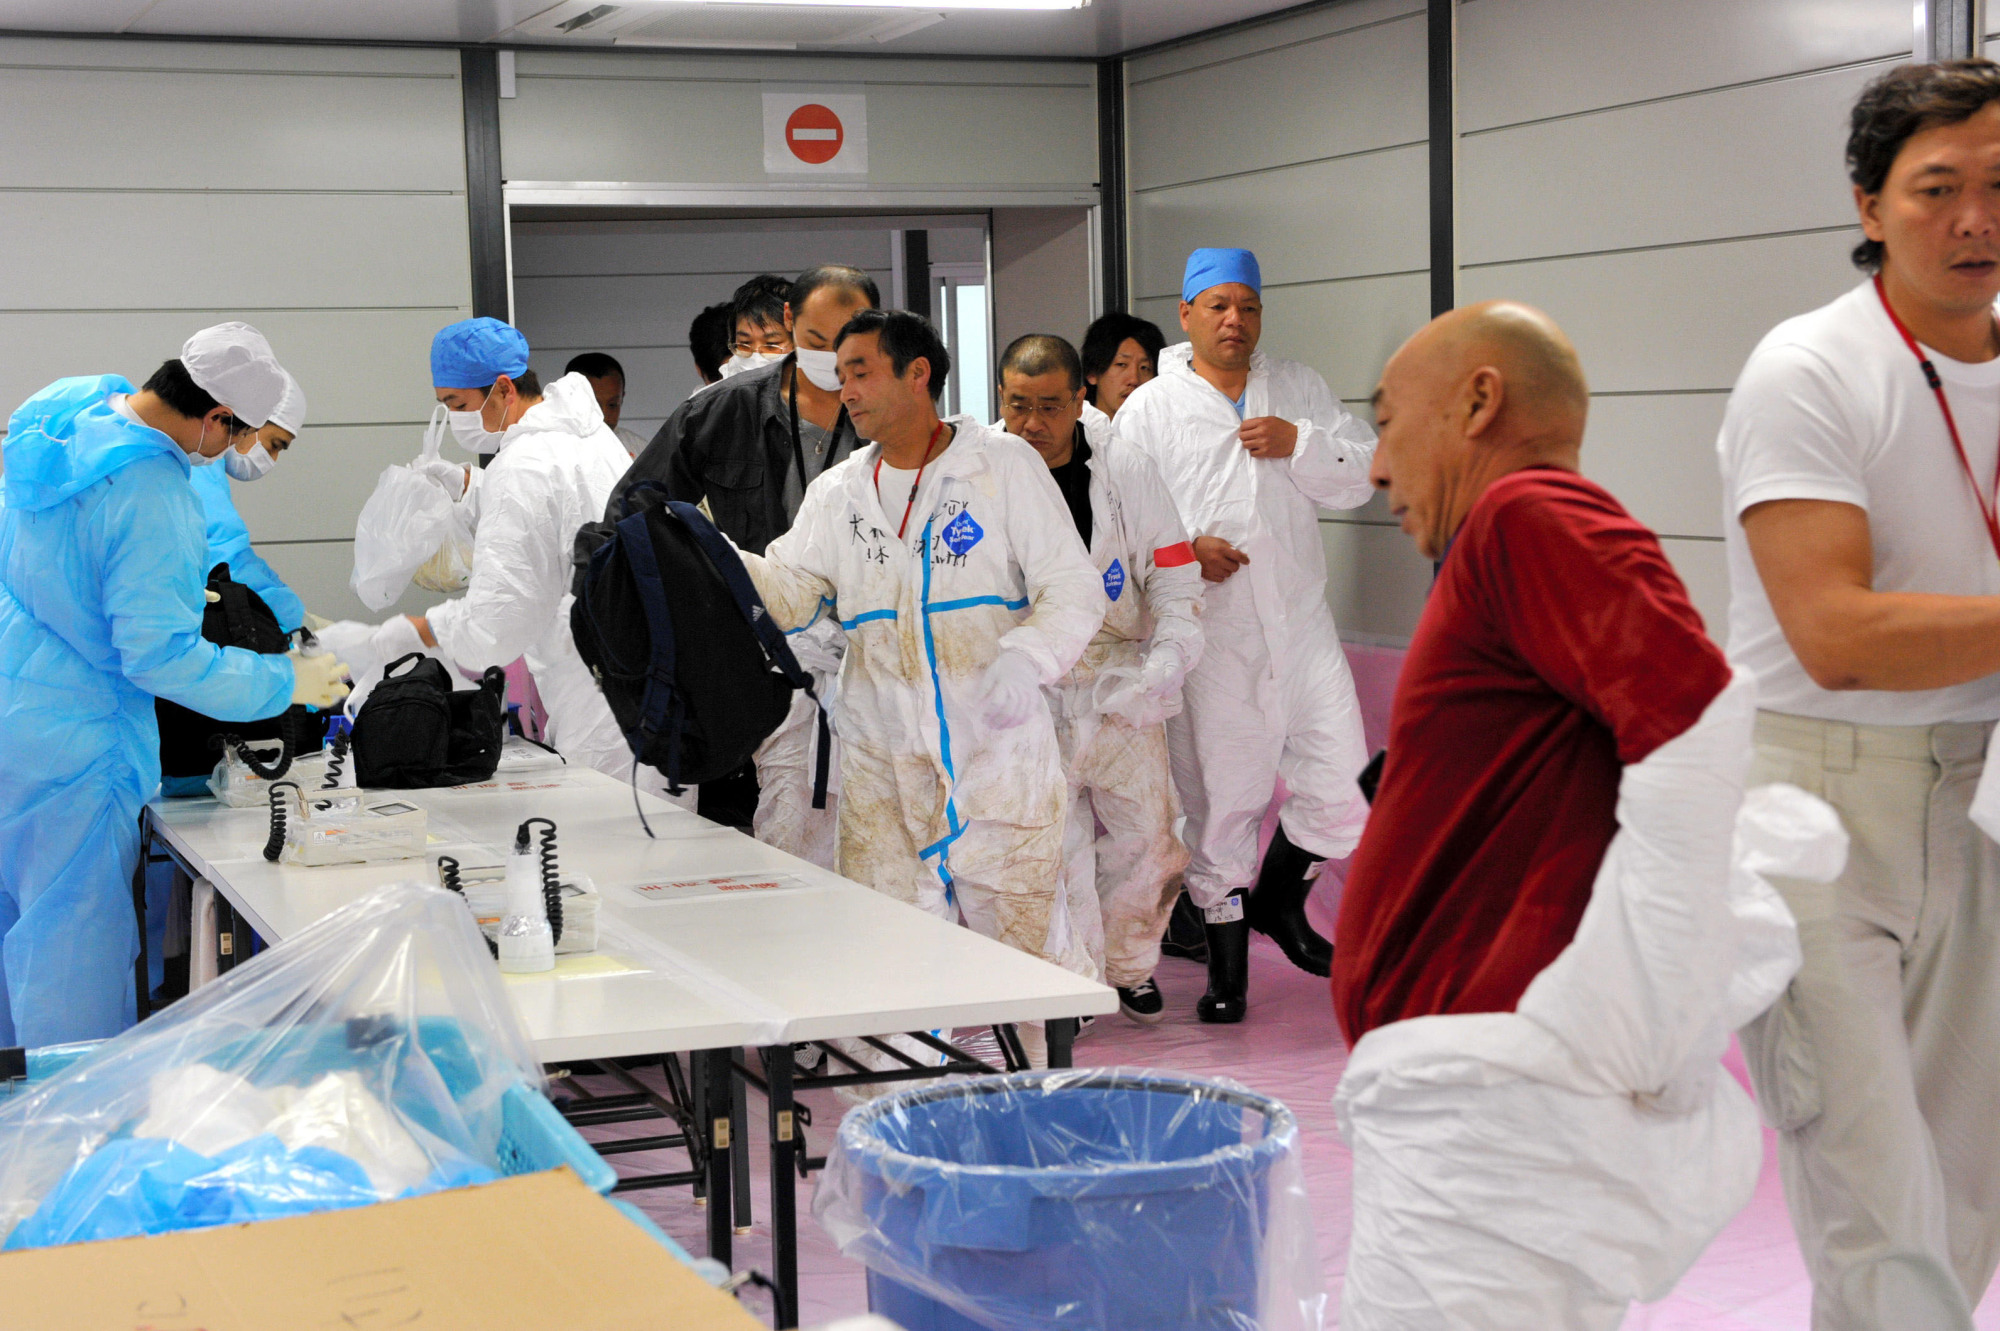 Front-line fight: Workers remove protective clothing after a shift at the Fukushima No. 1 nuclear plant in November 2011. | KYODO